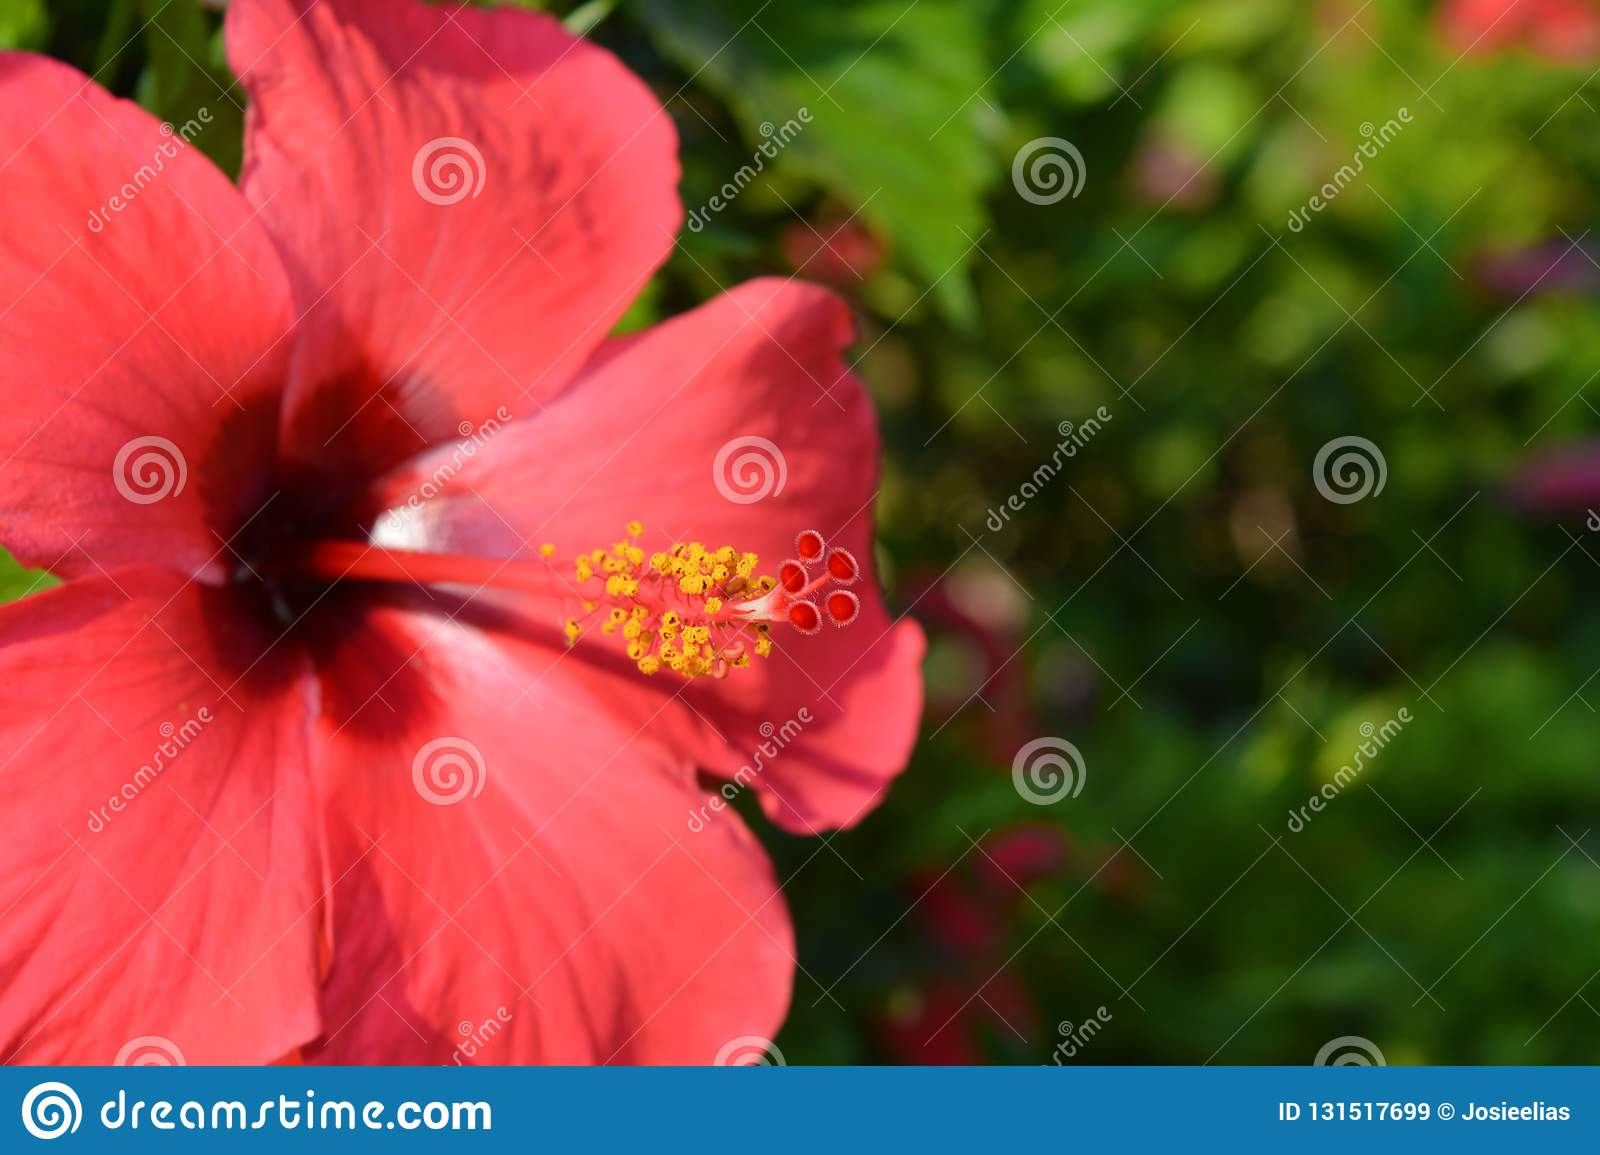 Bright Red Hibiscus Flower Close Up Stock Image Image Of Close